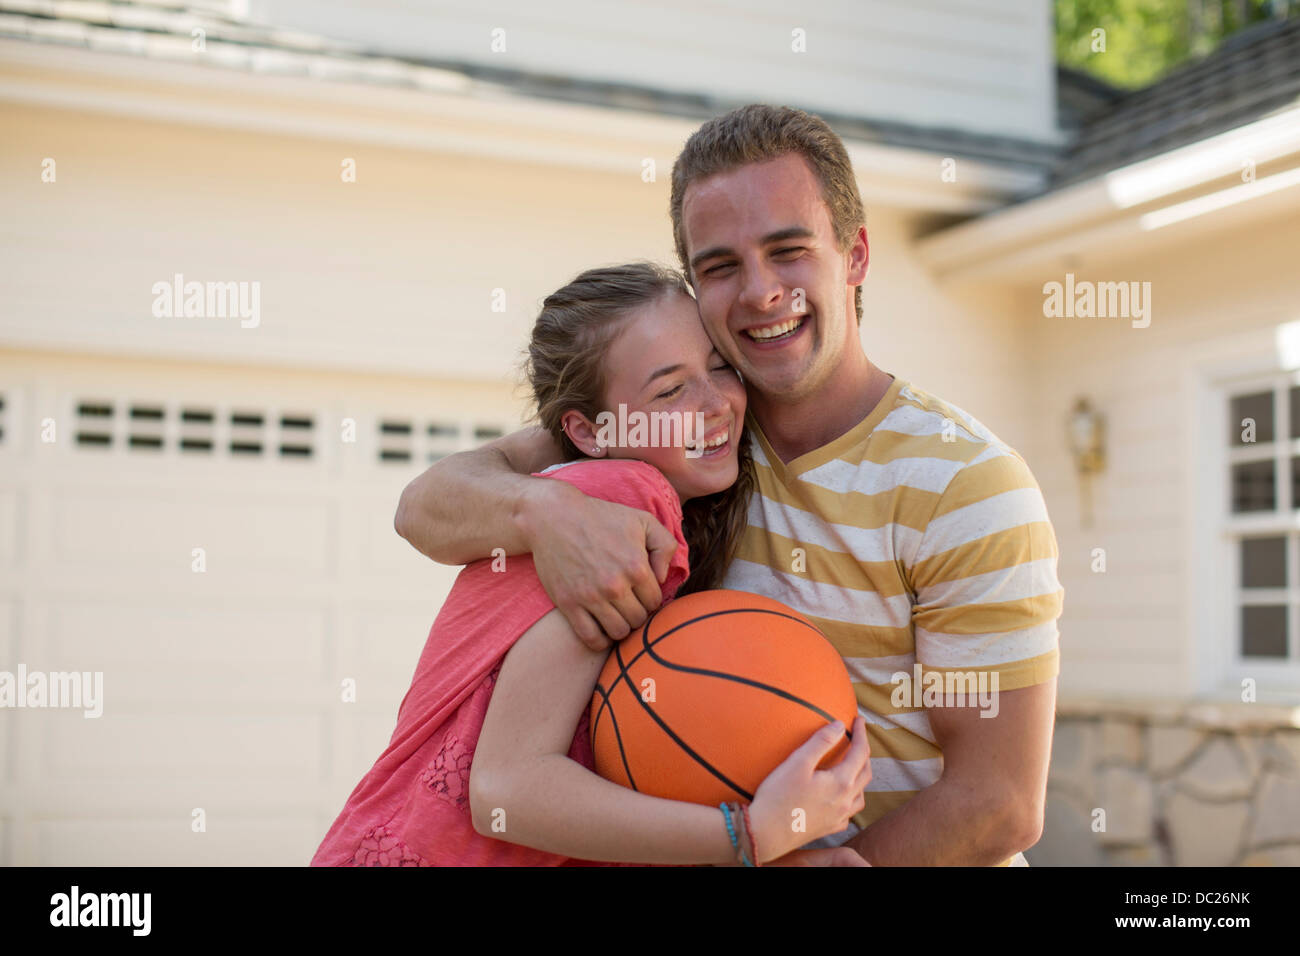 Brother with arm around sister holding basketball - Stock Image